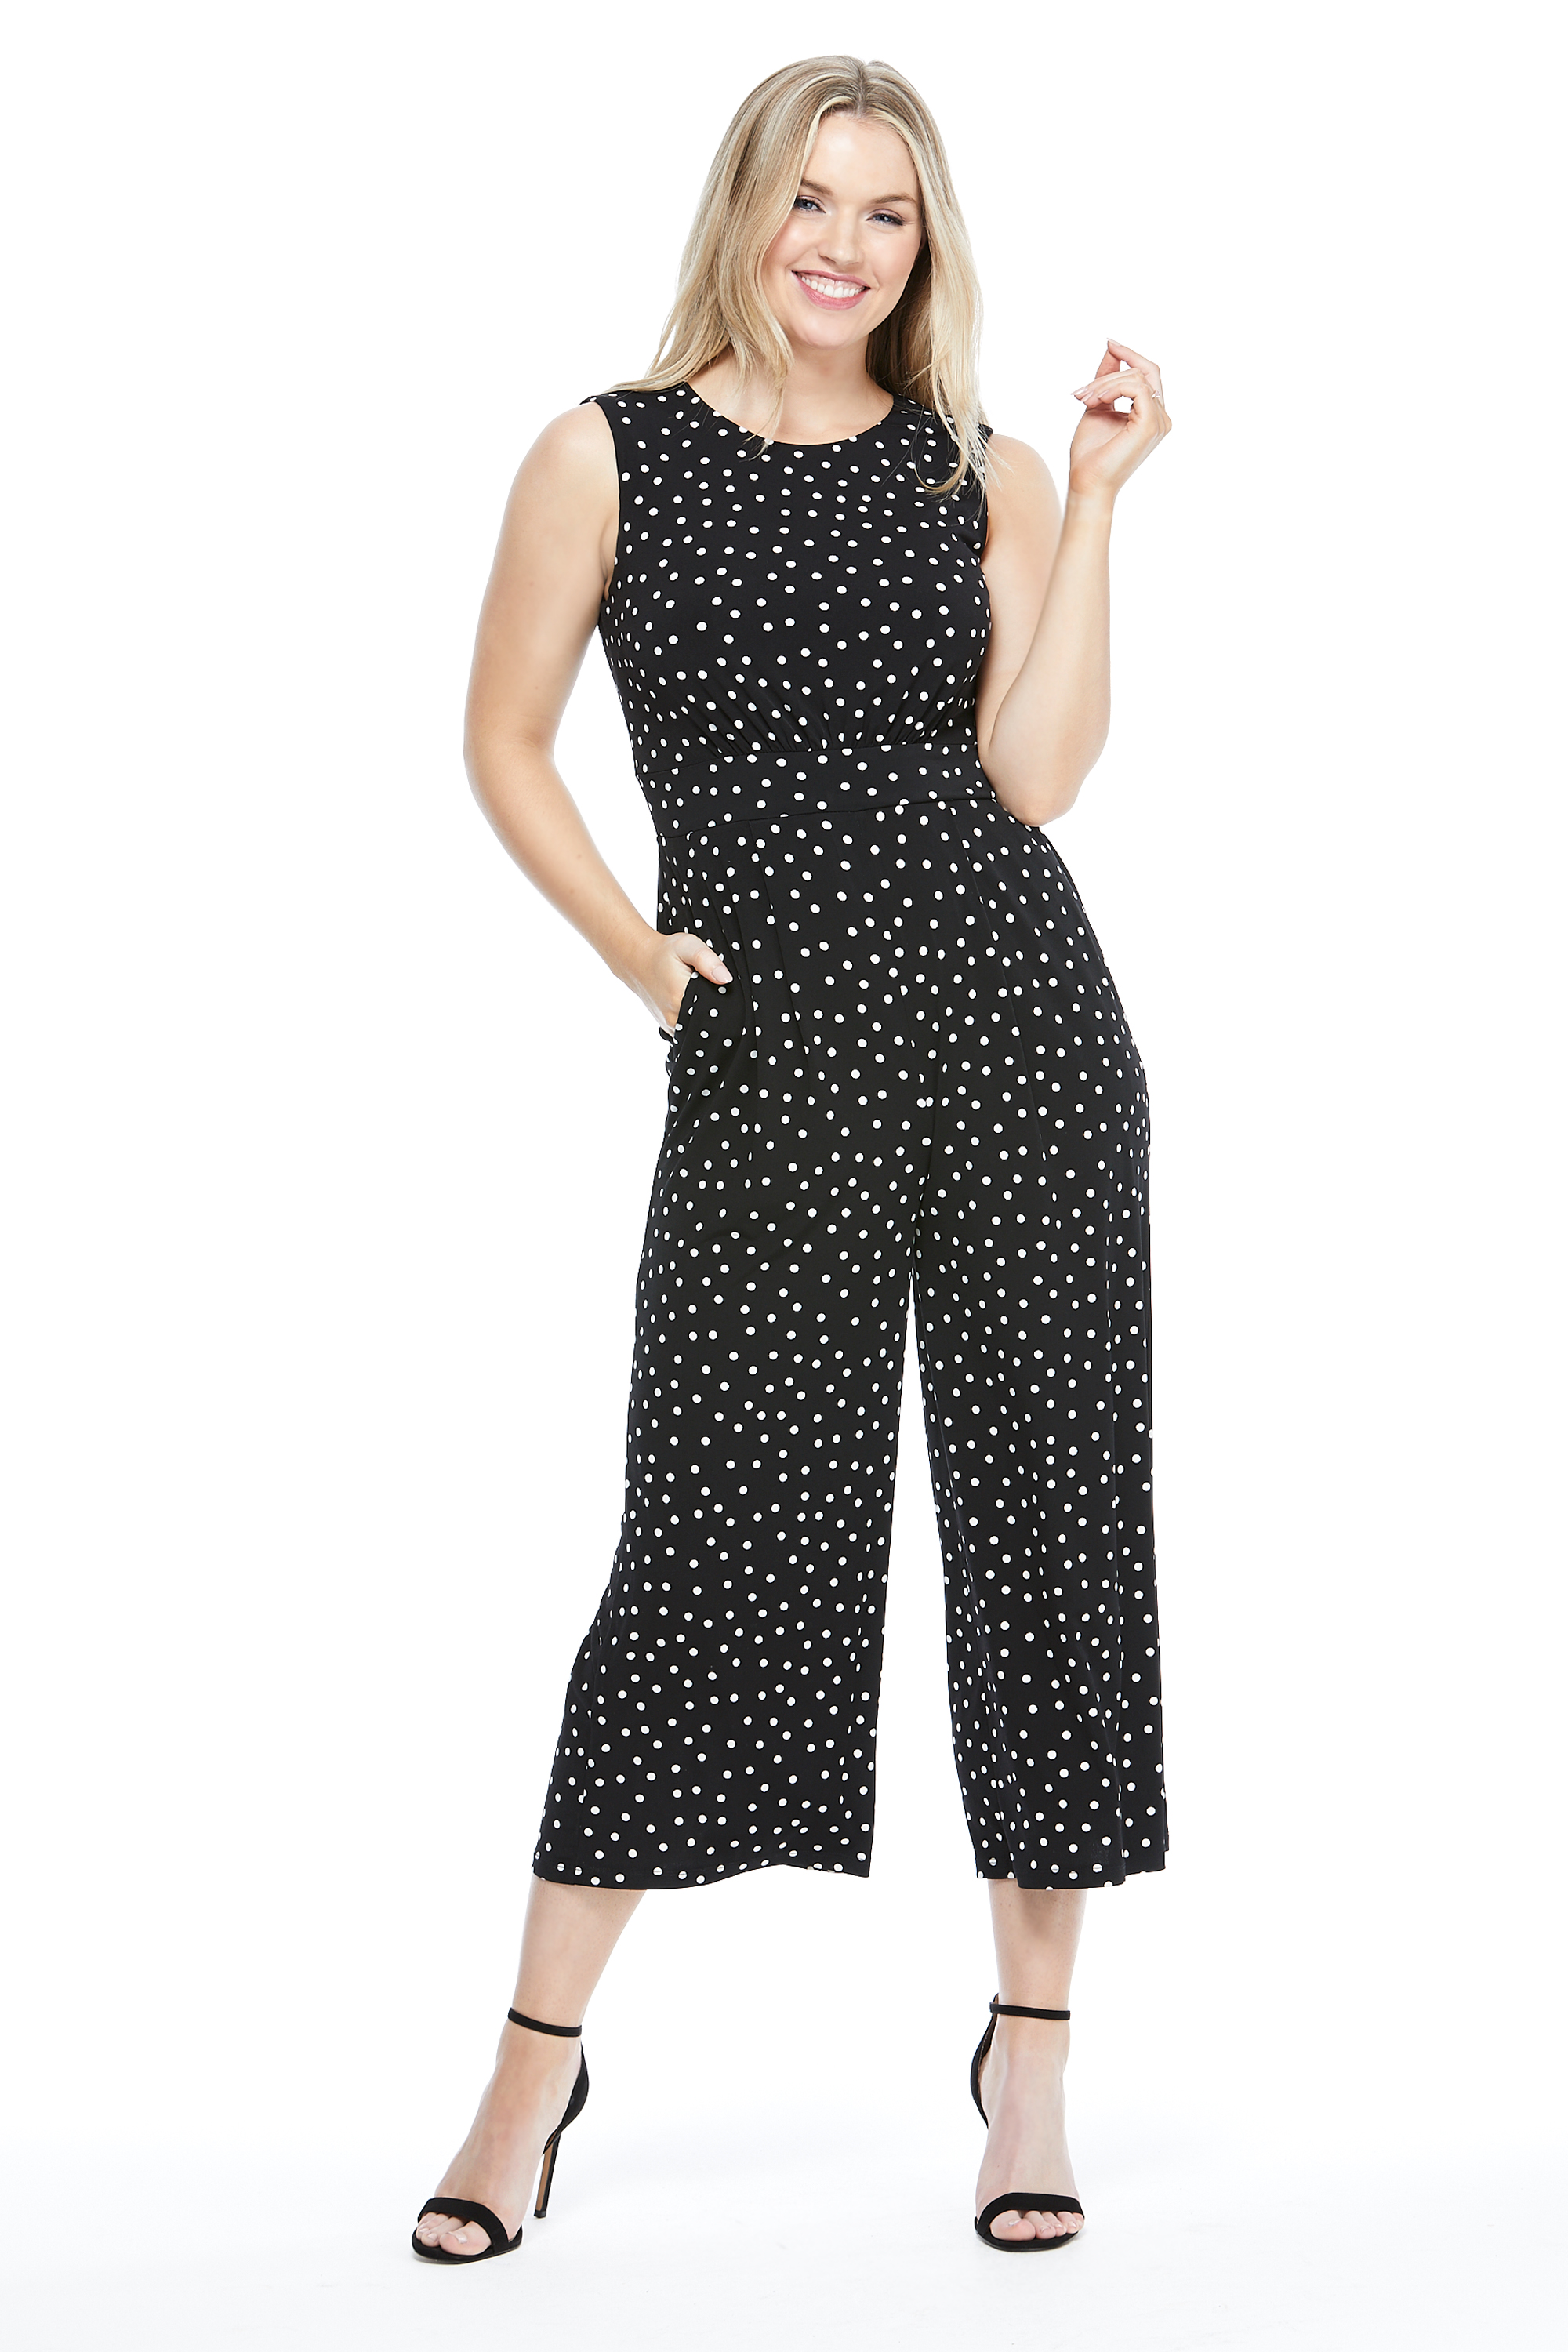 Annabelle Polka Dot Jumpsuit -Black/White - Front